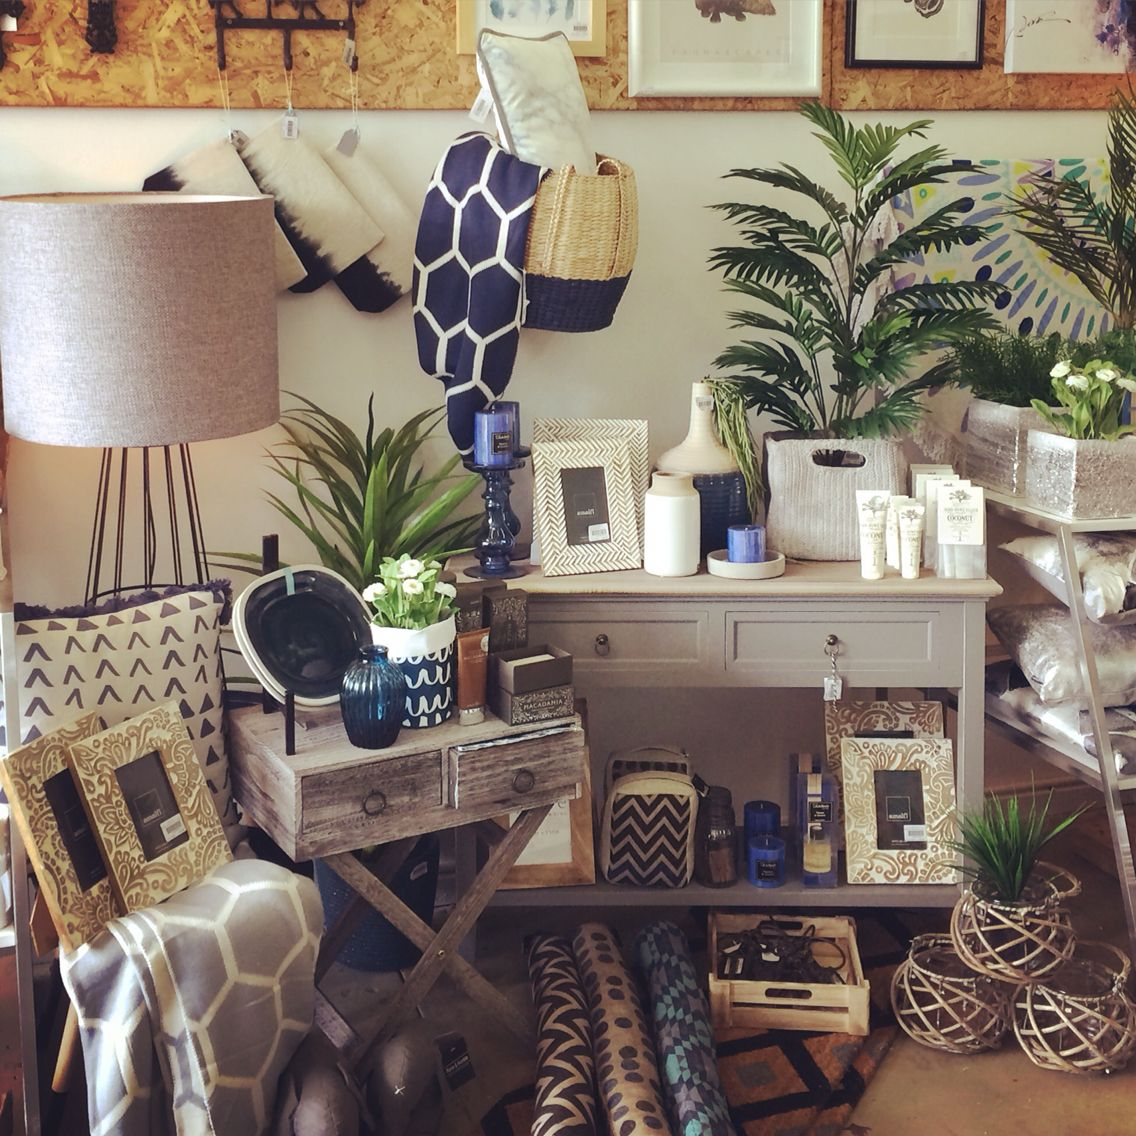 Home Design And Decor Expo 2015: Navy And Grey Visual Merchandising, Shop Display November